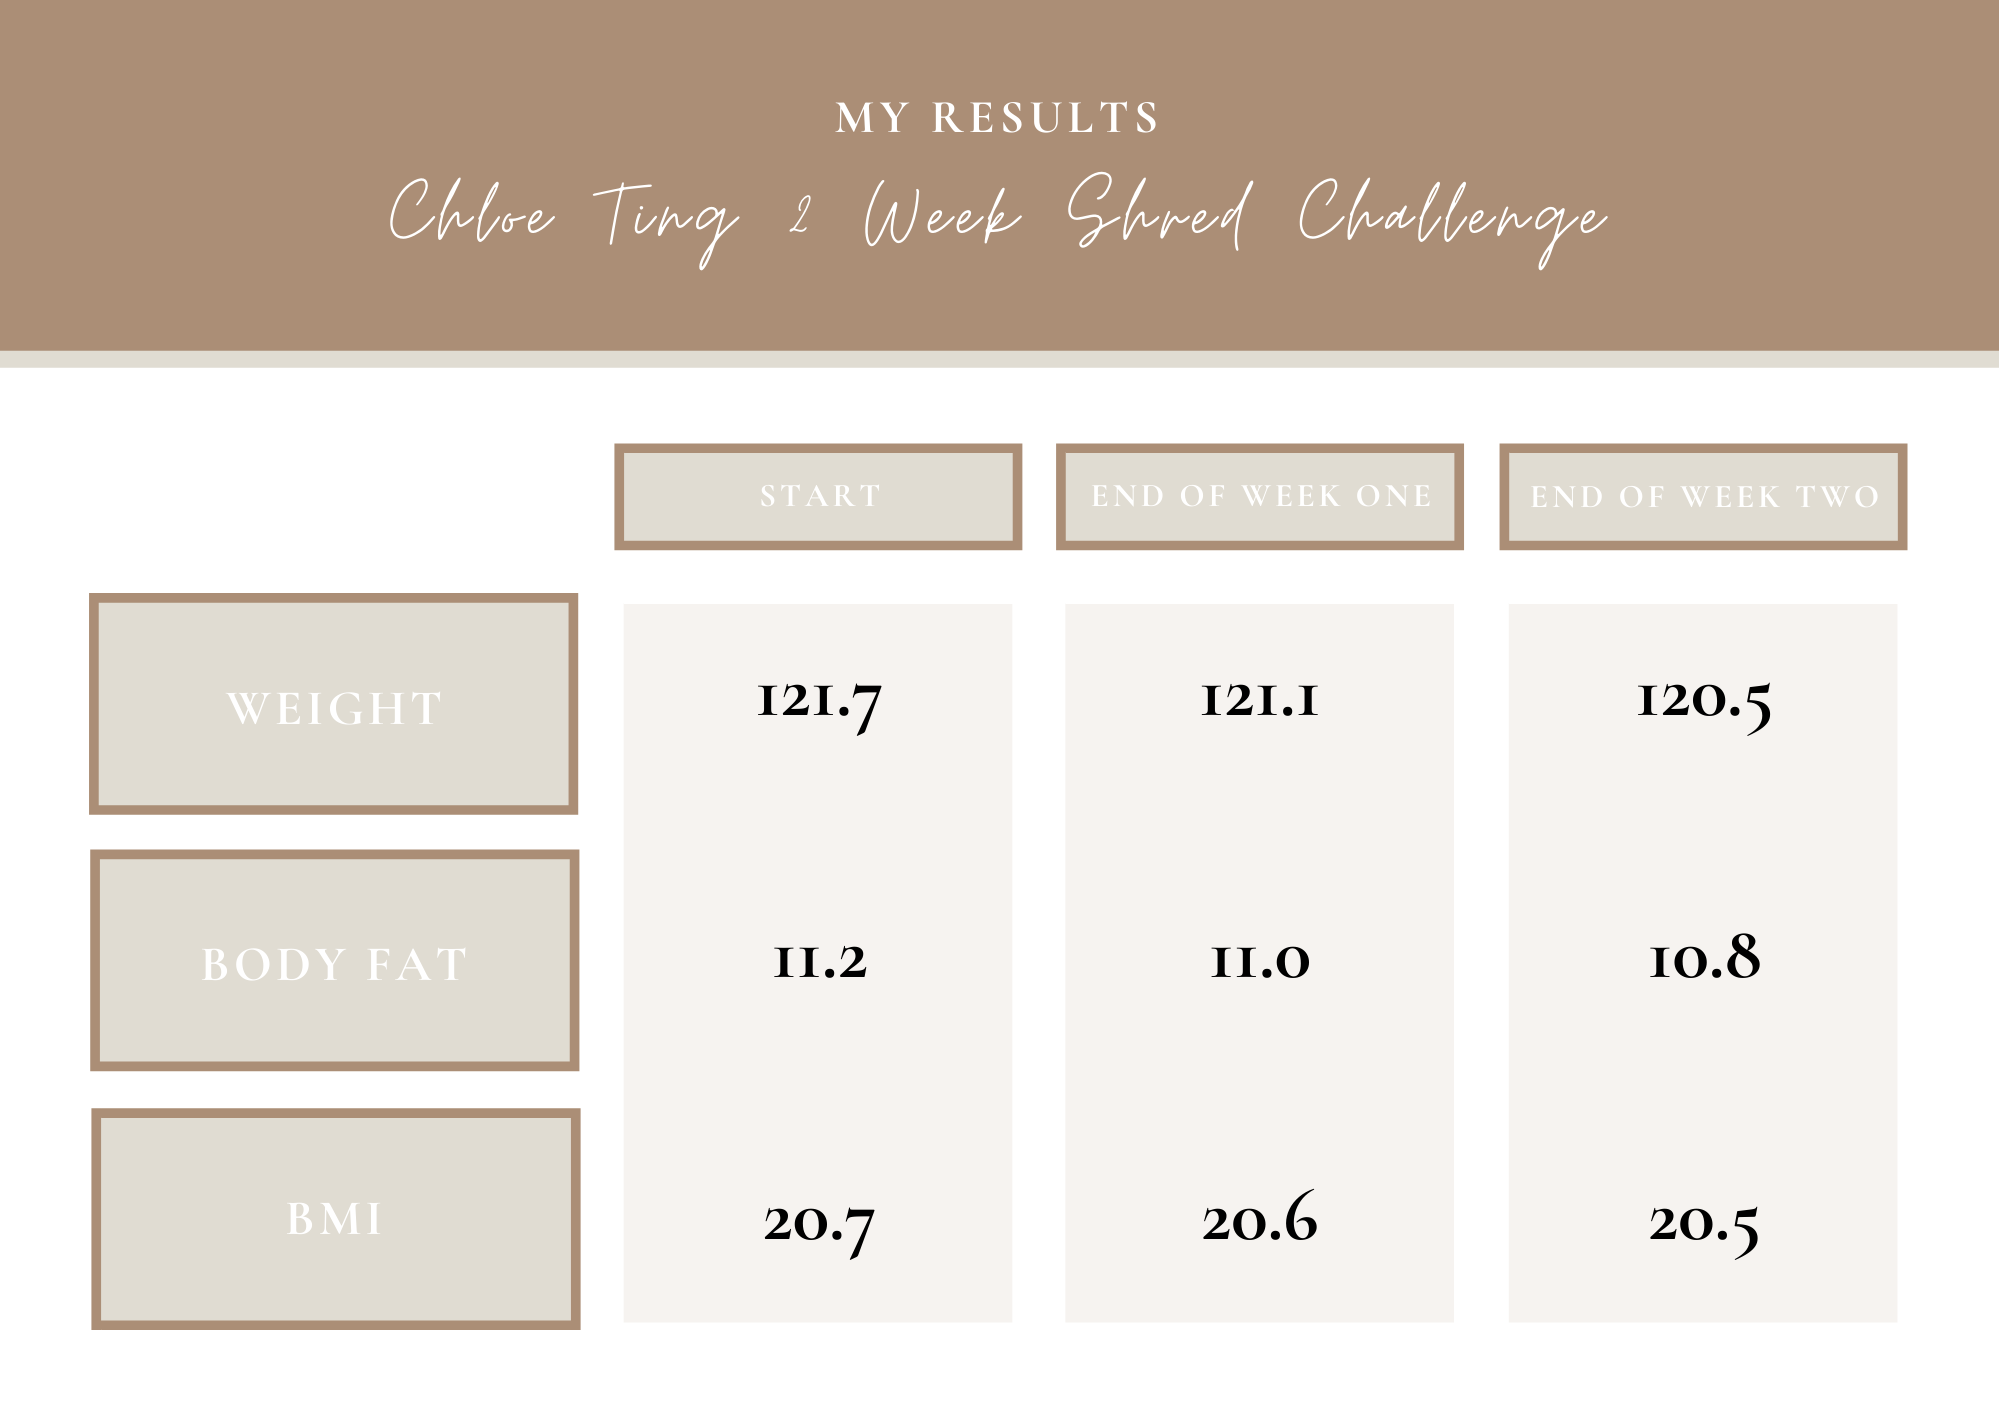 Chloe Ting 2 Week Shred Challenge Results | Louella Reese